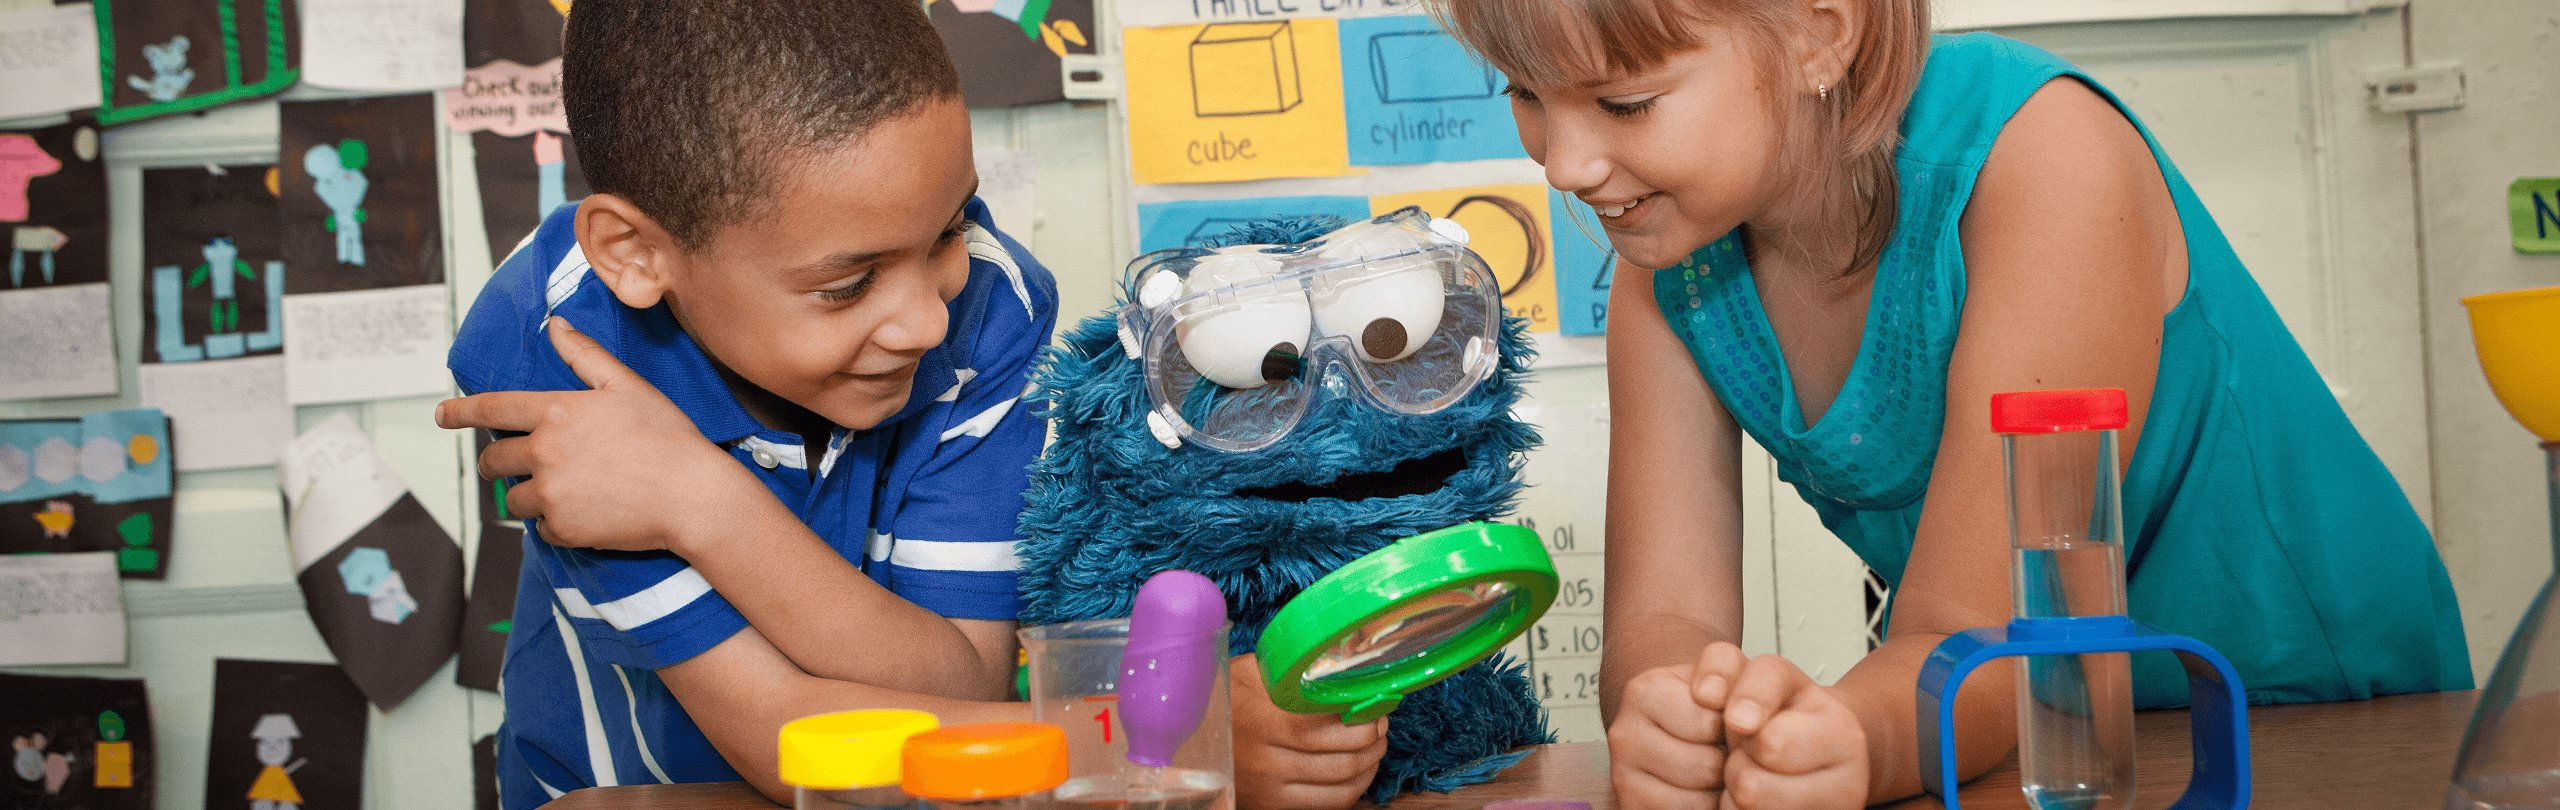 2 children with Cookie Monster doing science experiments